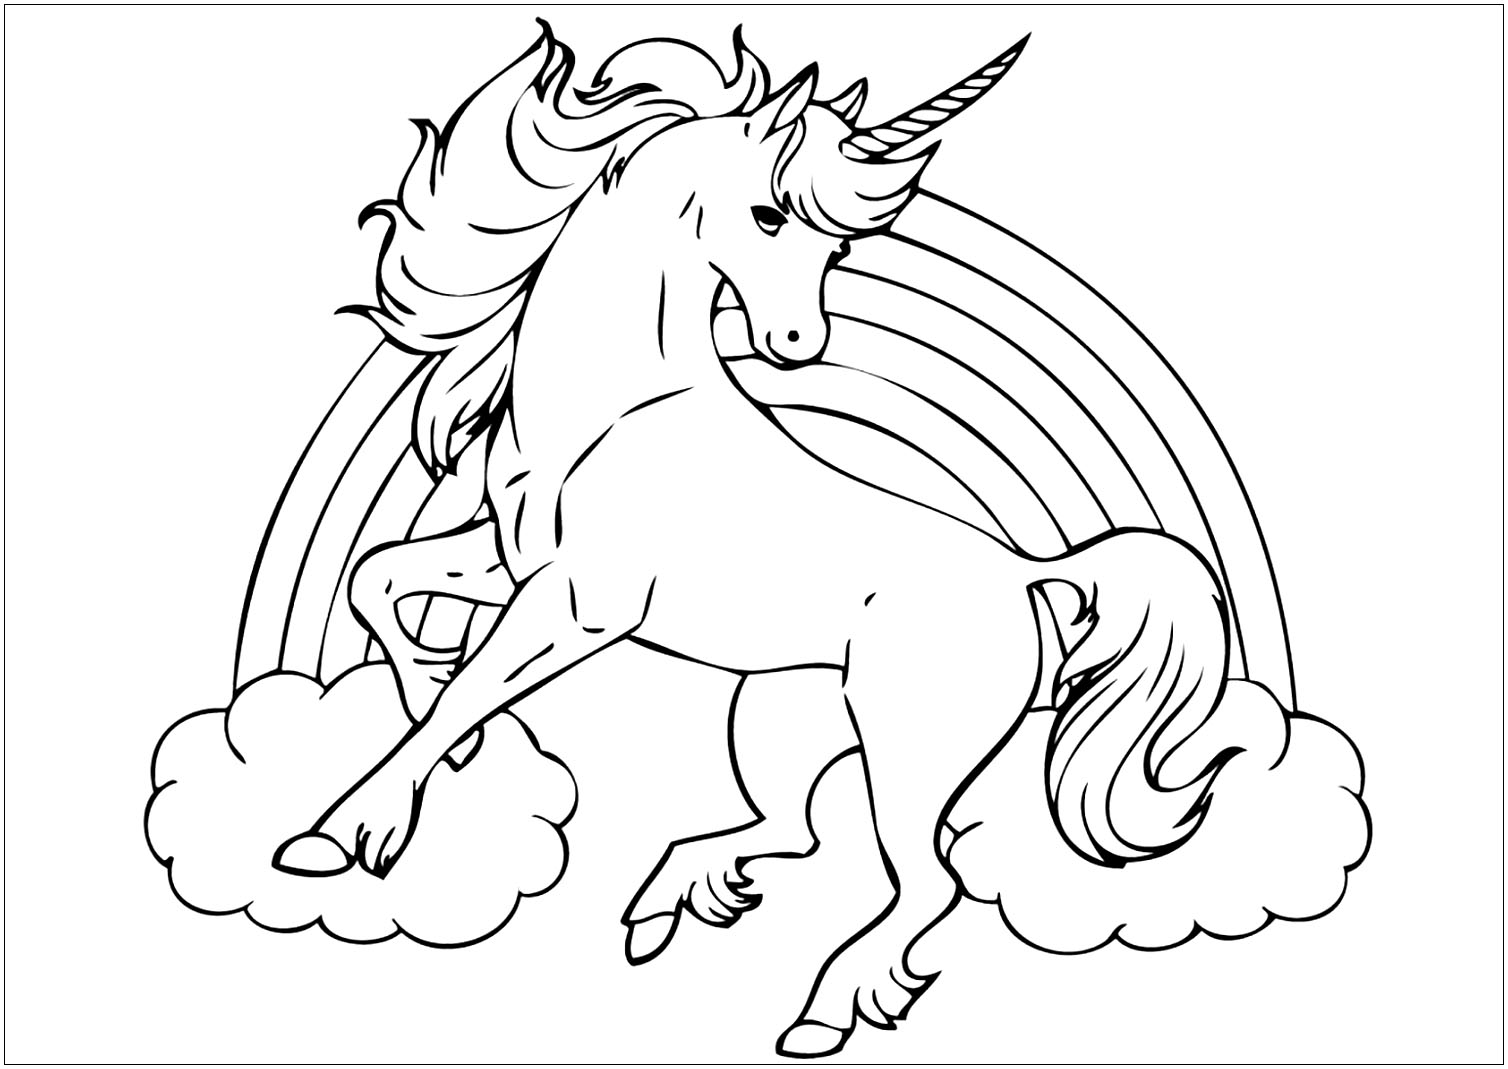 Agnes with Unicorn coloring page | Free Printable Coloring Pages | 1069x1508